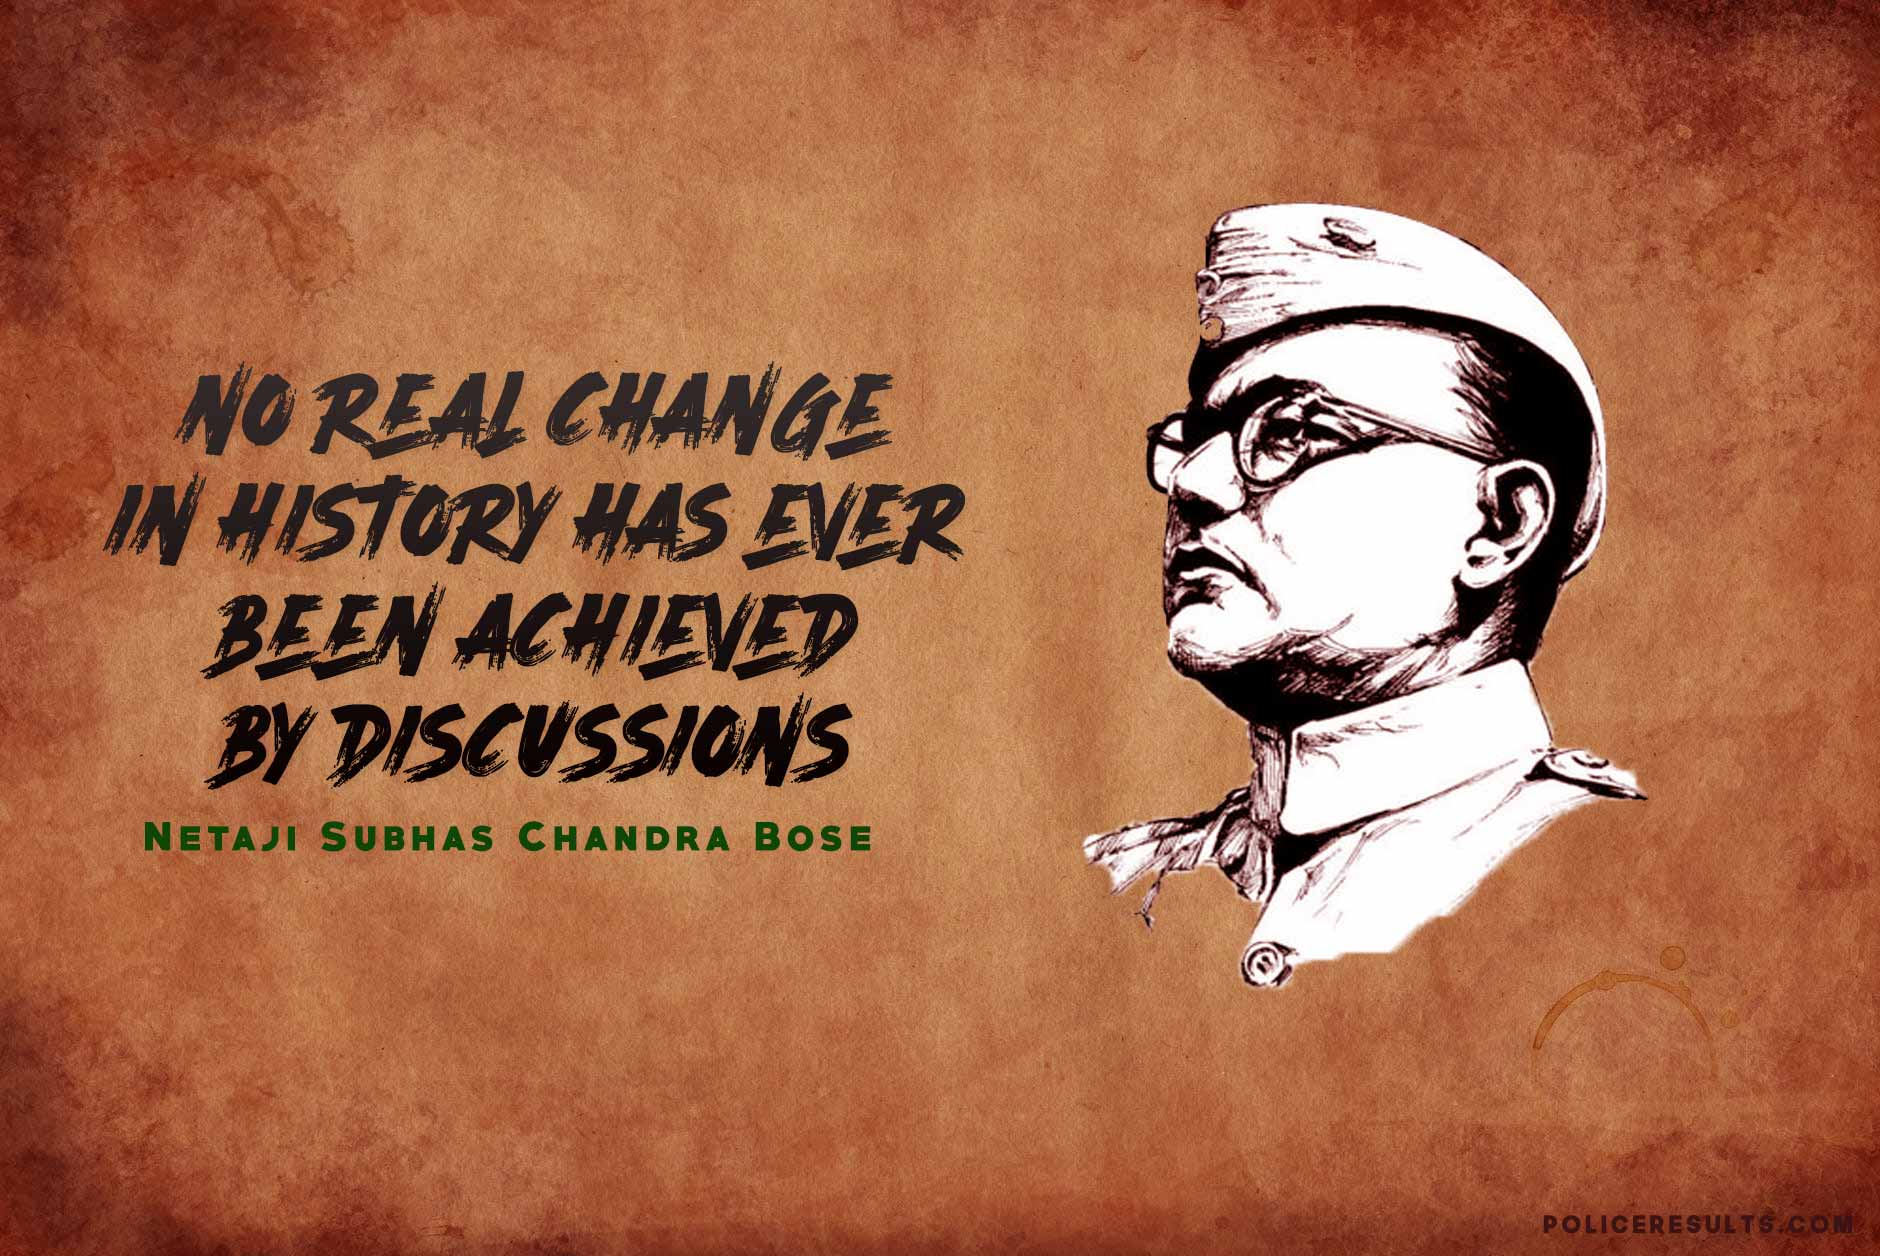 Netaji Subhas Chandra Bose : Inspirational Quotes, Slogans, famous thoughts of the leader